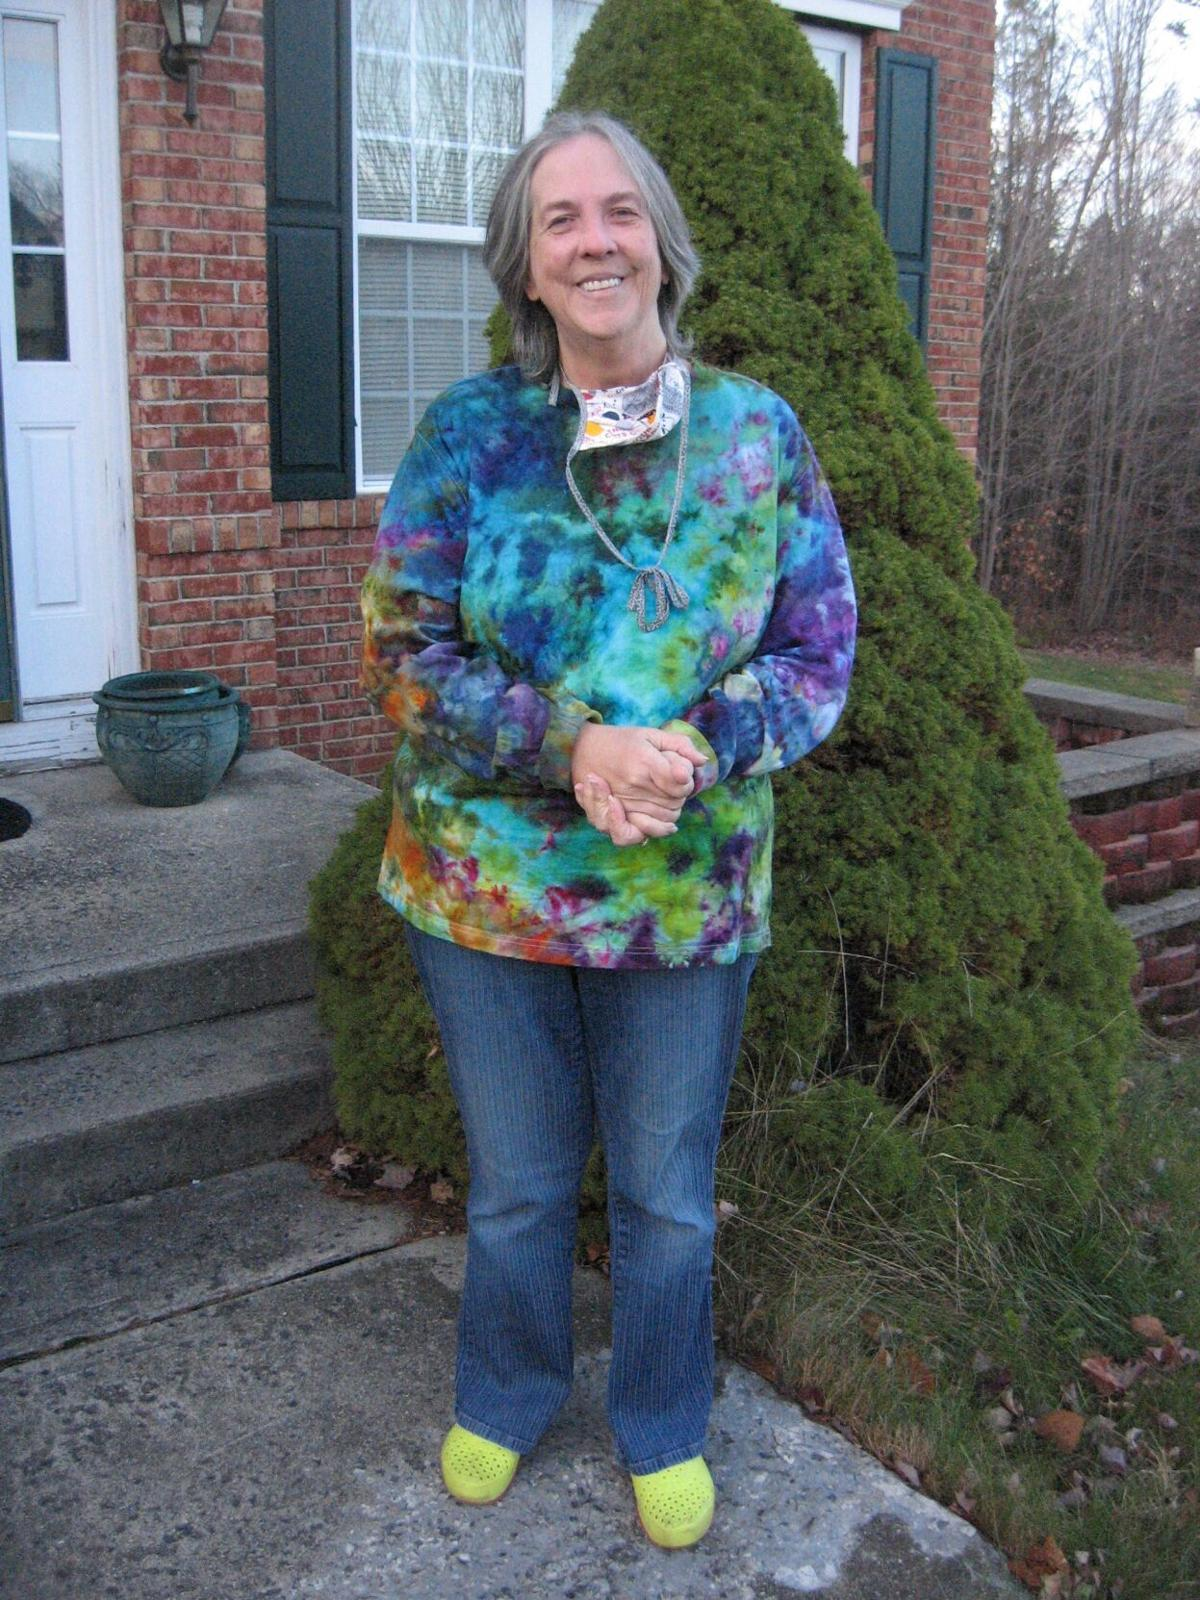 Torrington resident cooks up colorful hand-dyed designs with retro style